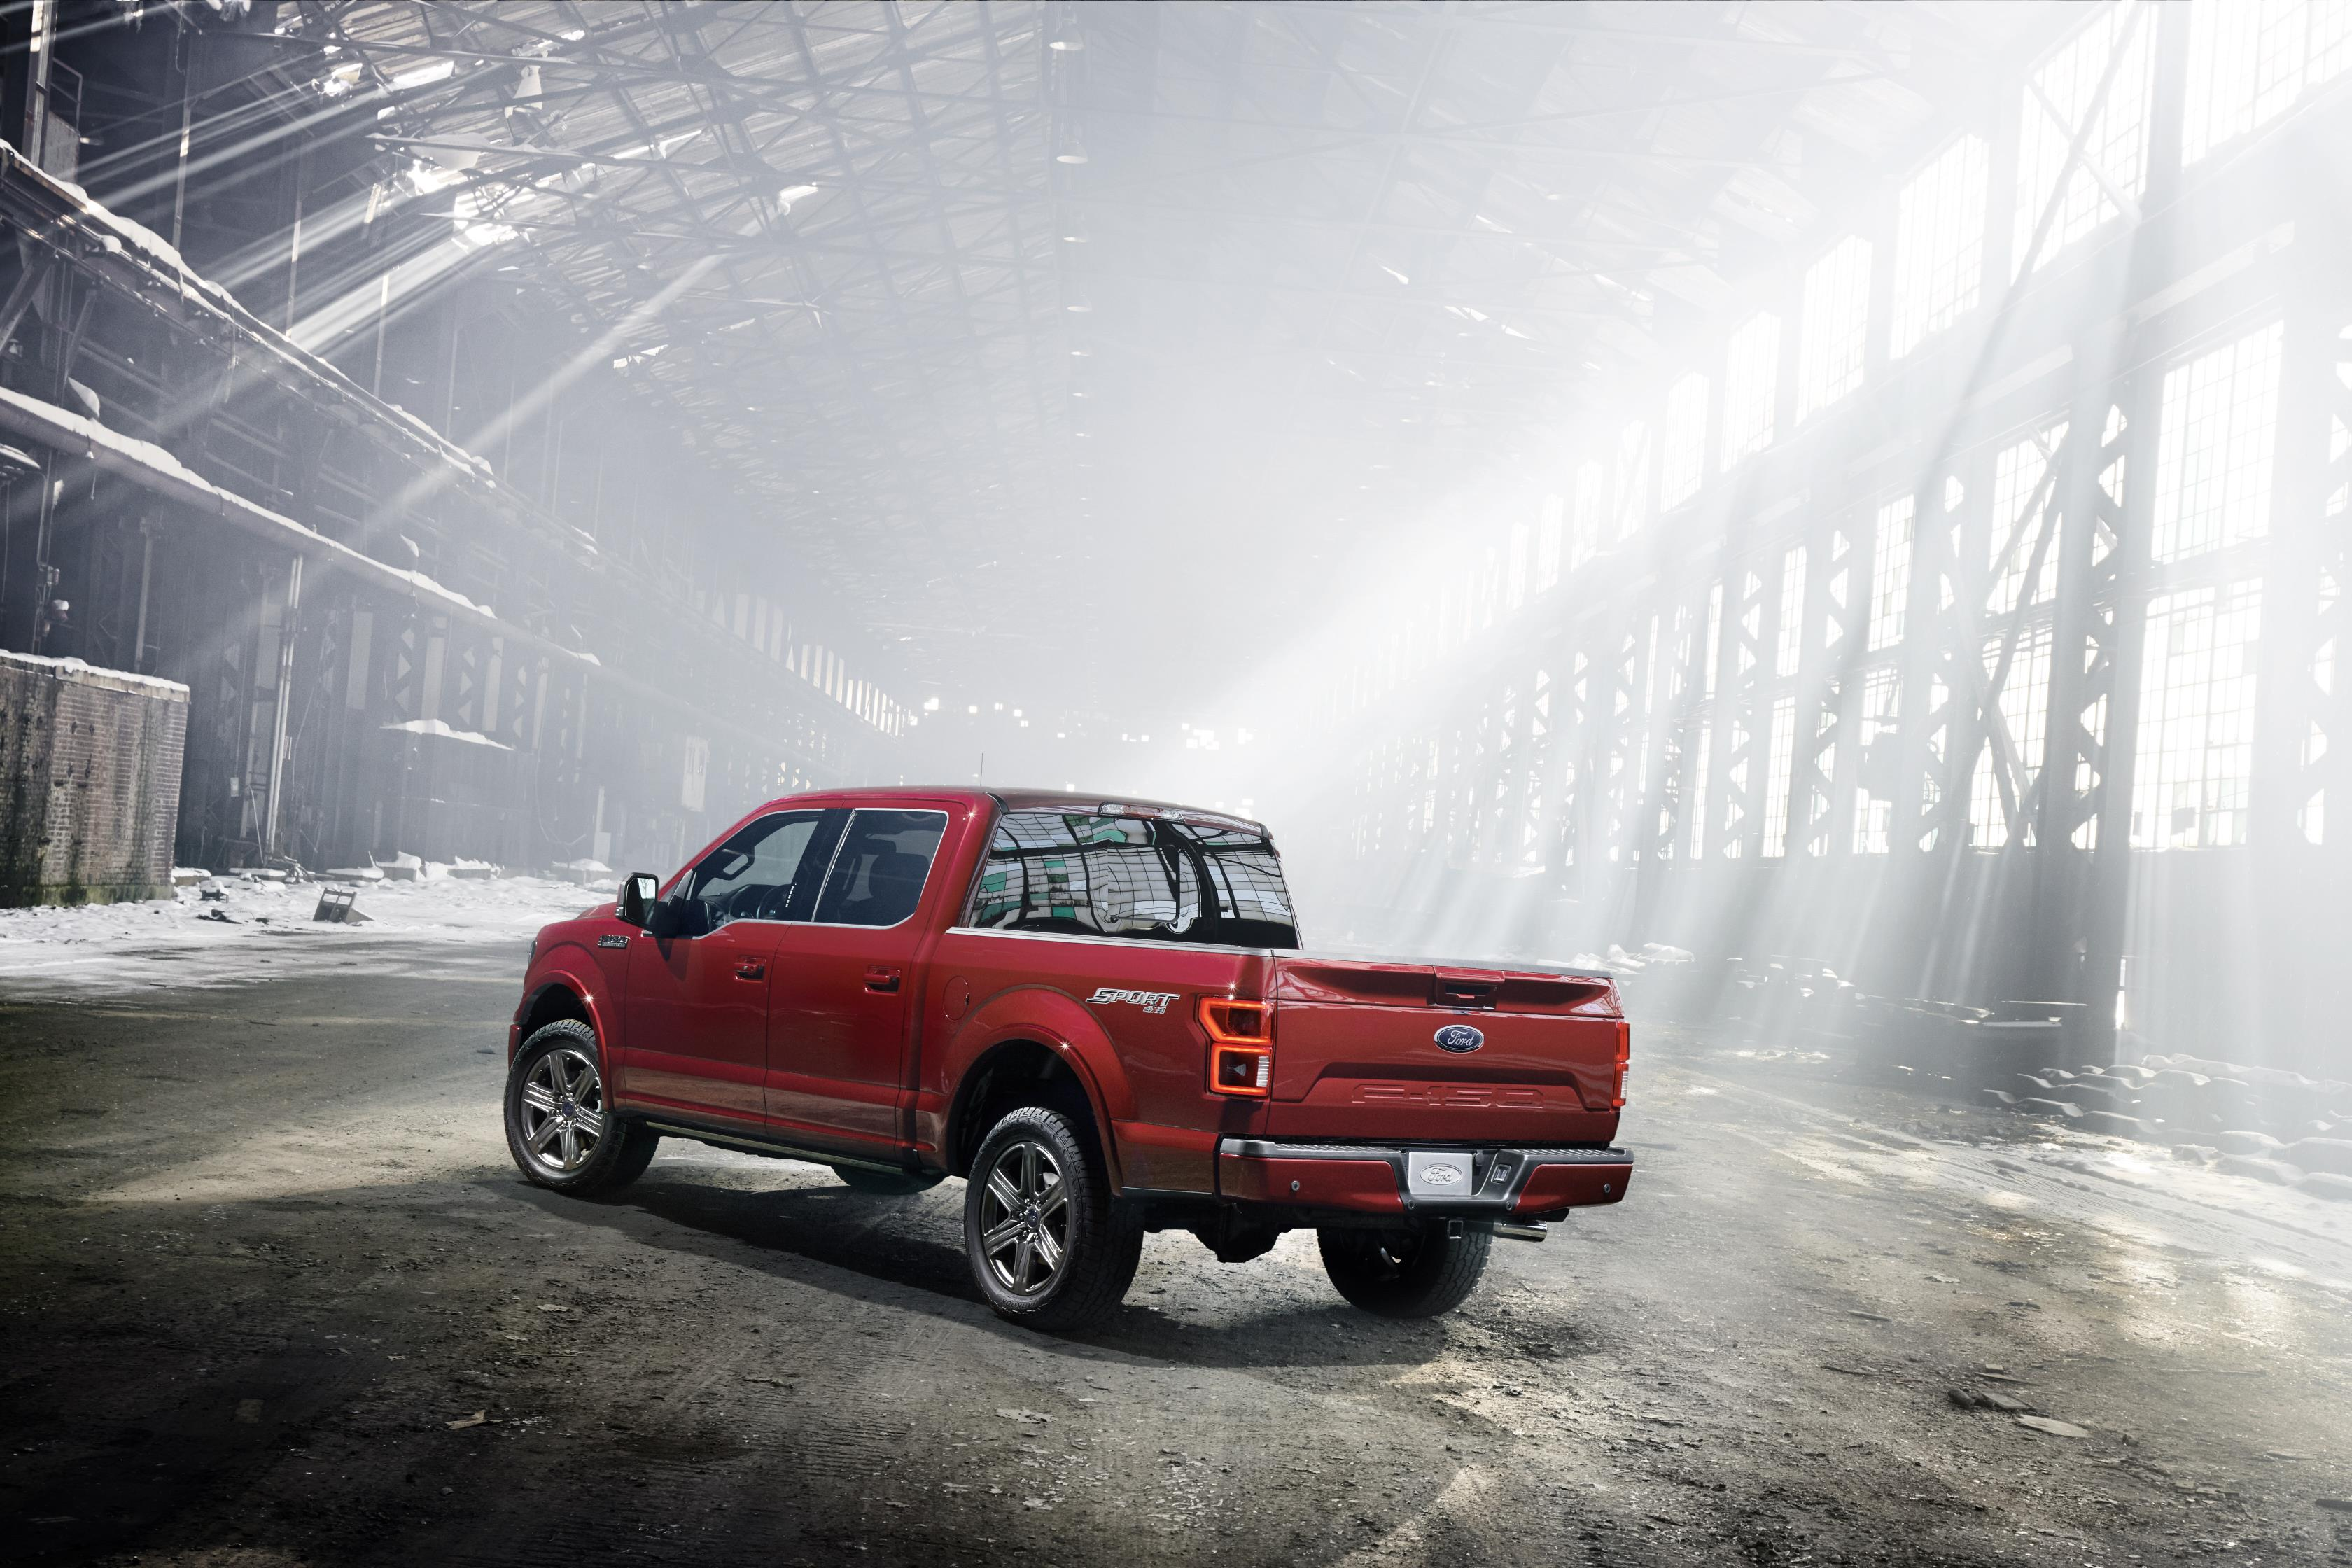 The automaker gives the 2 7 liter ecoboost v6 with the 10 speed automatic transmission as an example with this combo being capable of returning an